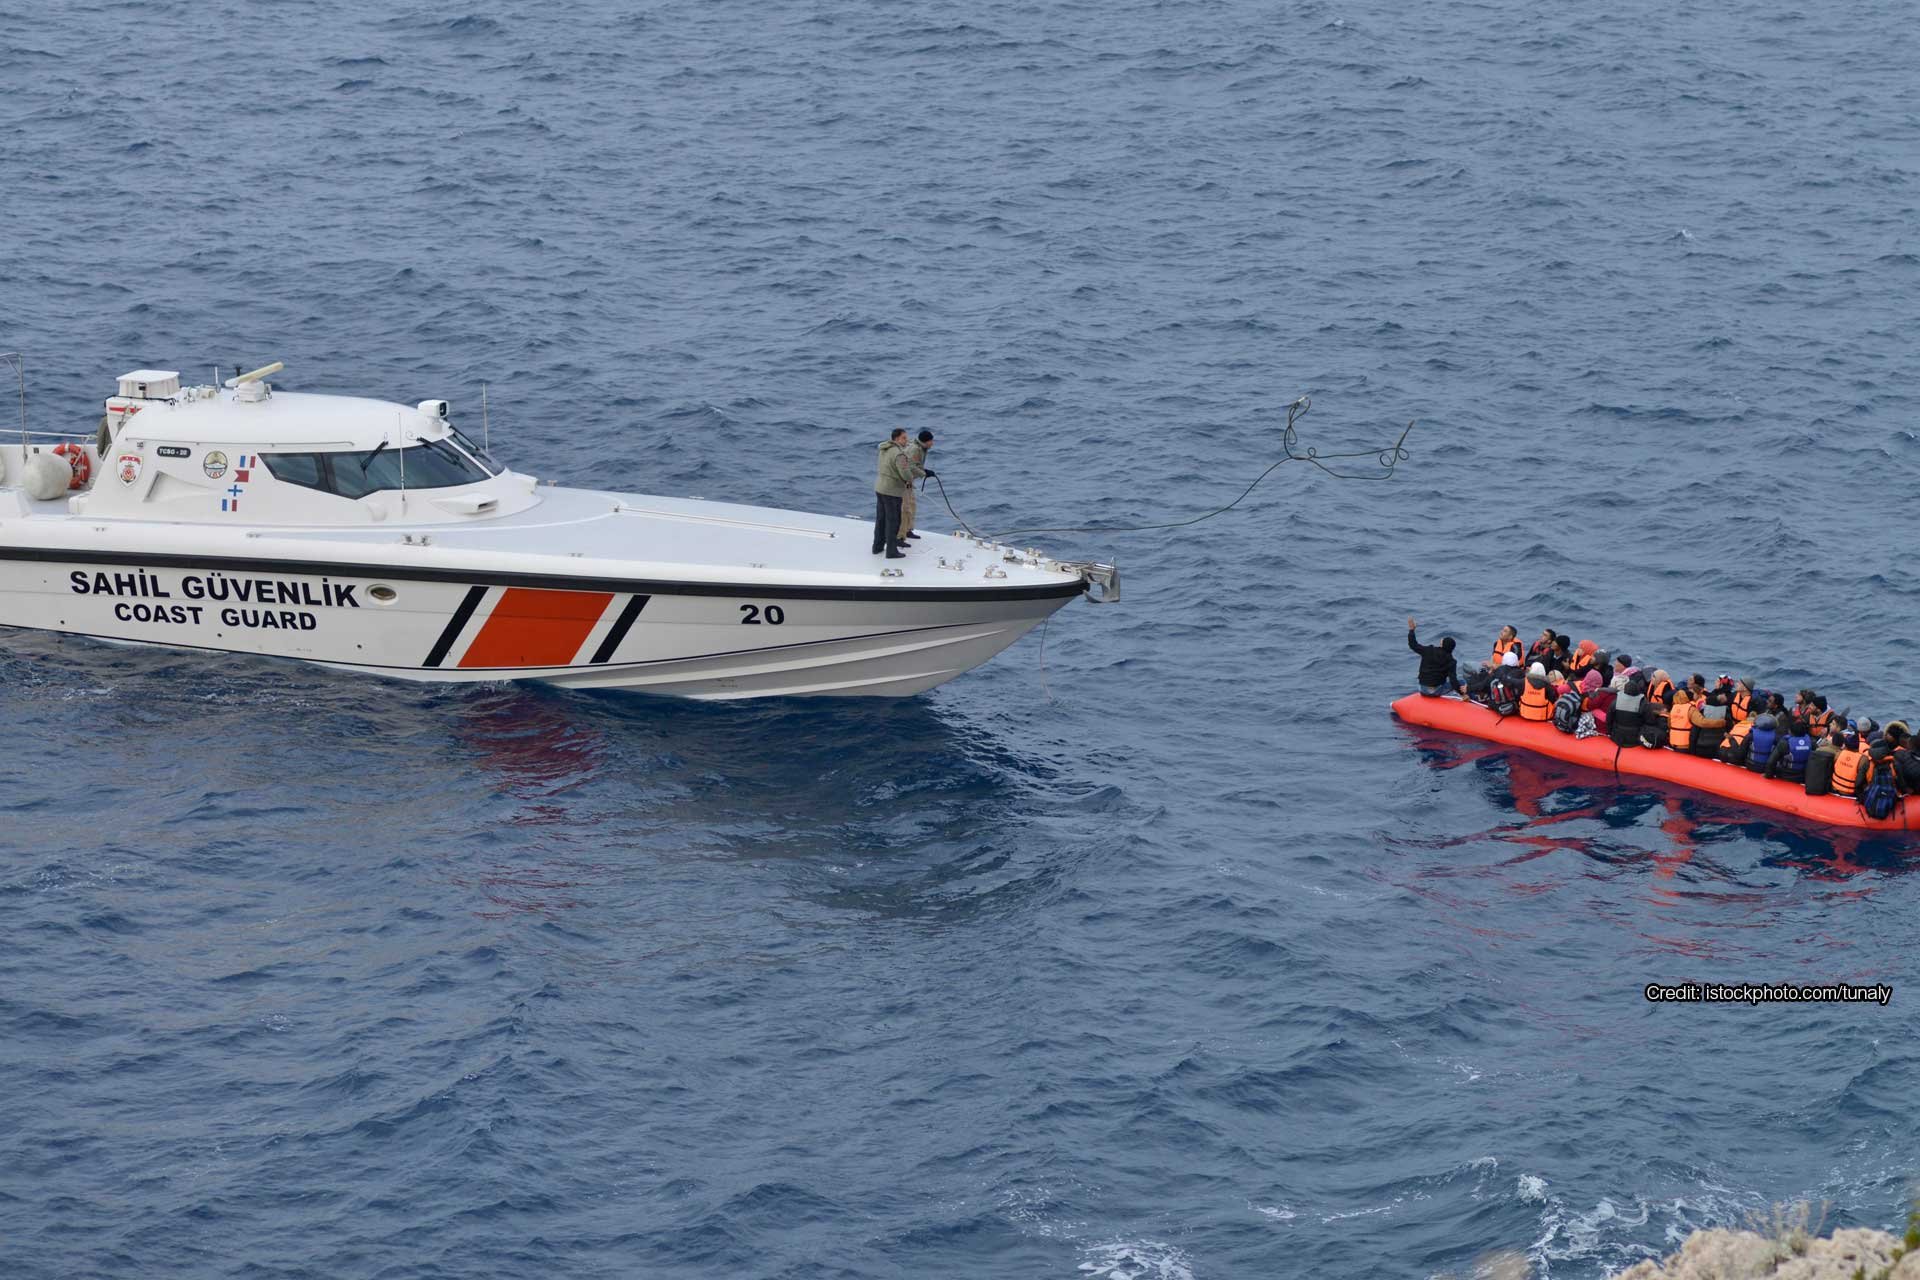 Refugees in boat being thrown a line by a coast guard boat